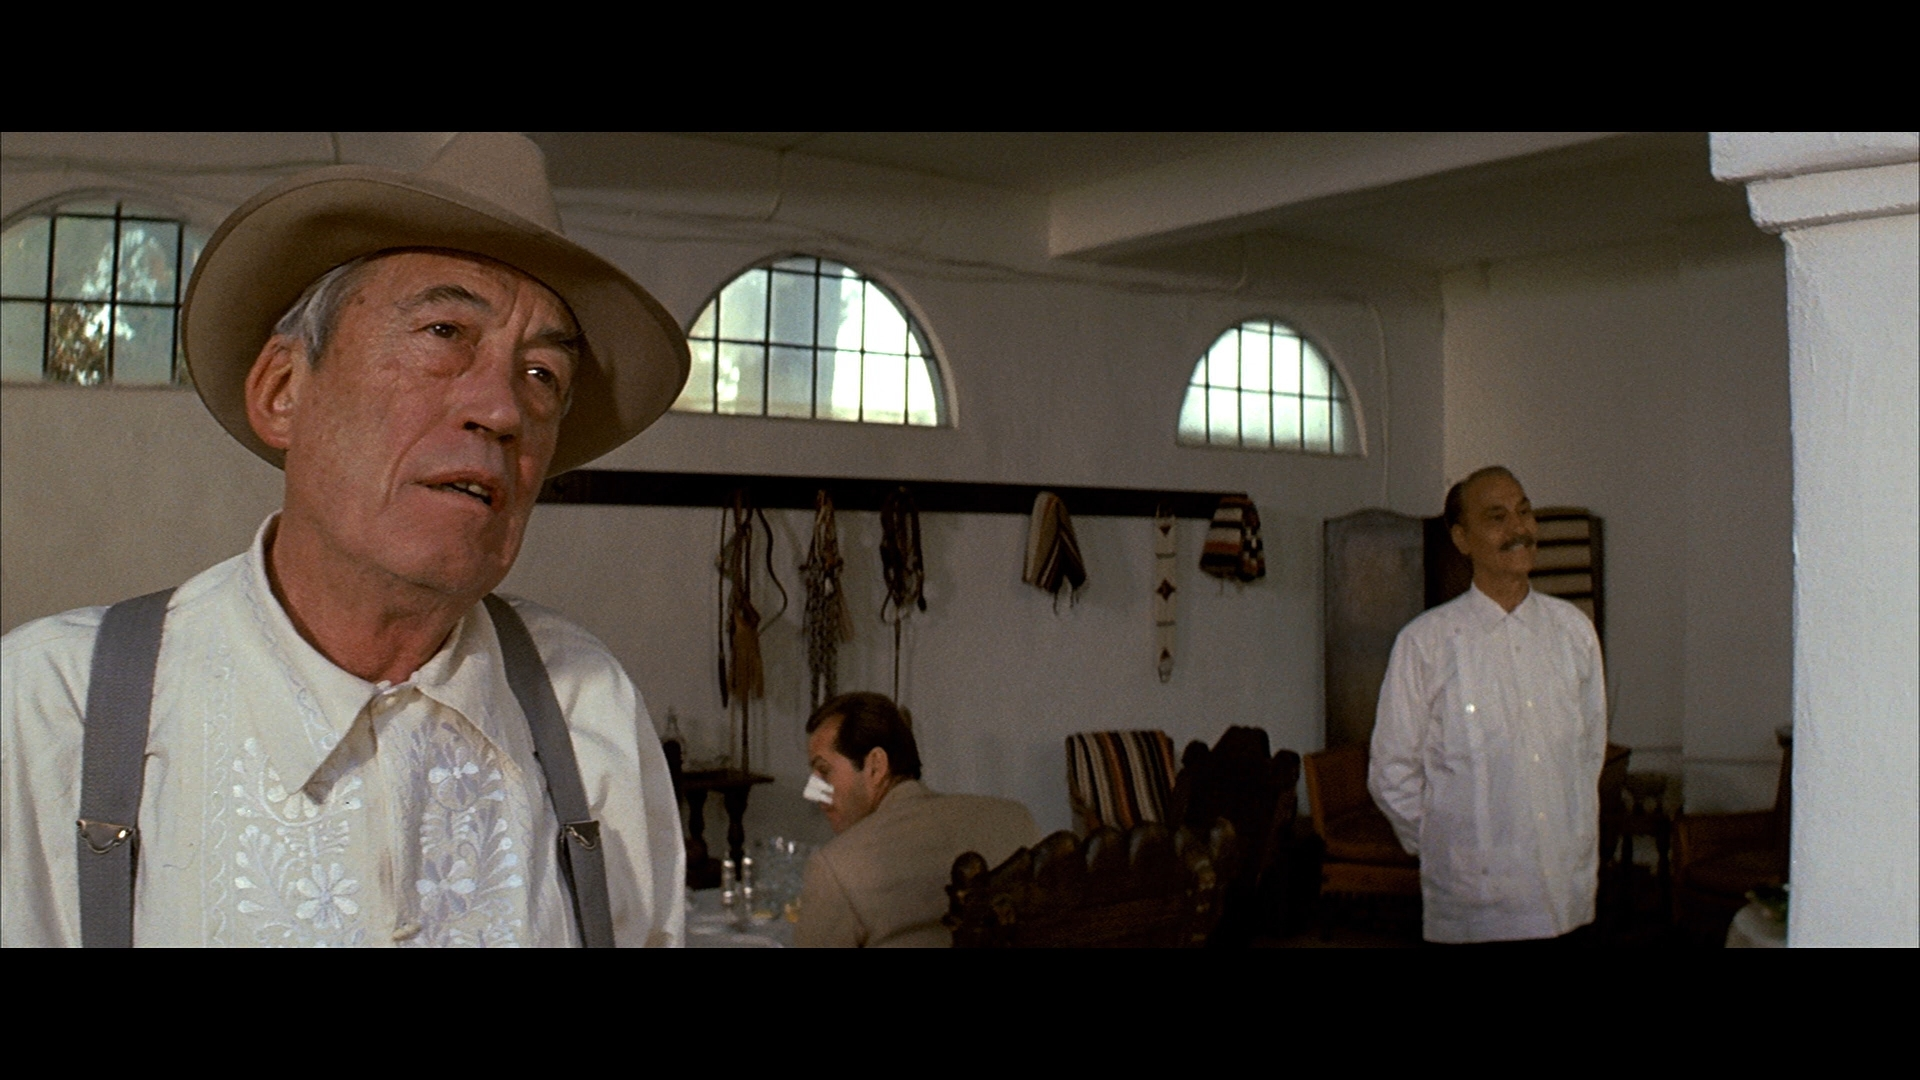 an analysis of chinatown by roman polanski In roman polanski's influential noir film, jack nicholson plays jake gittes, a  private dick embroiled in elaborate corruption scheme in 1930s.